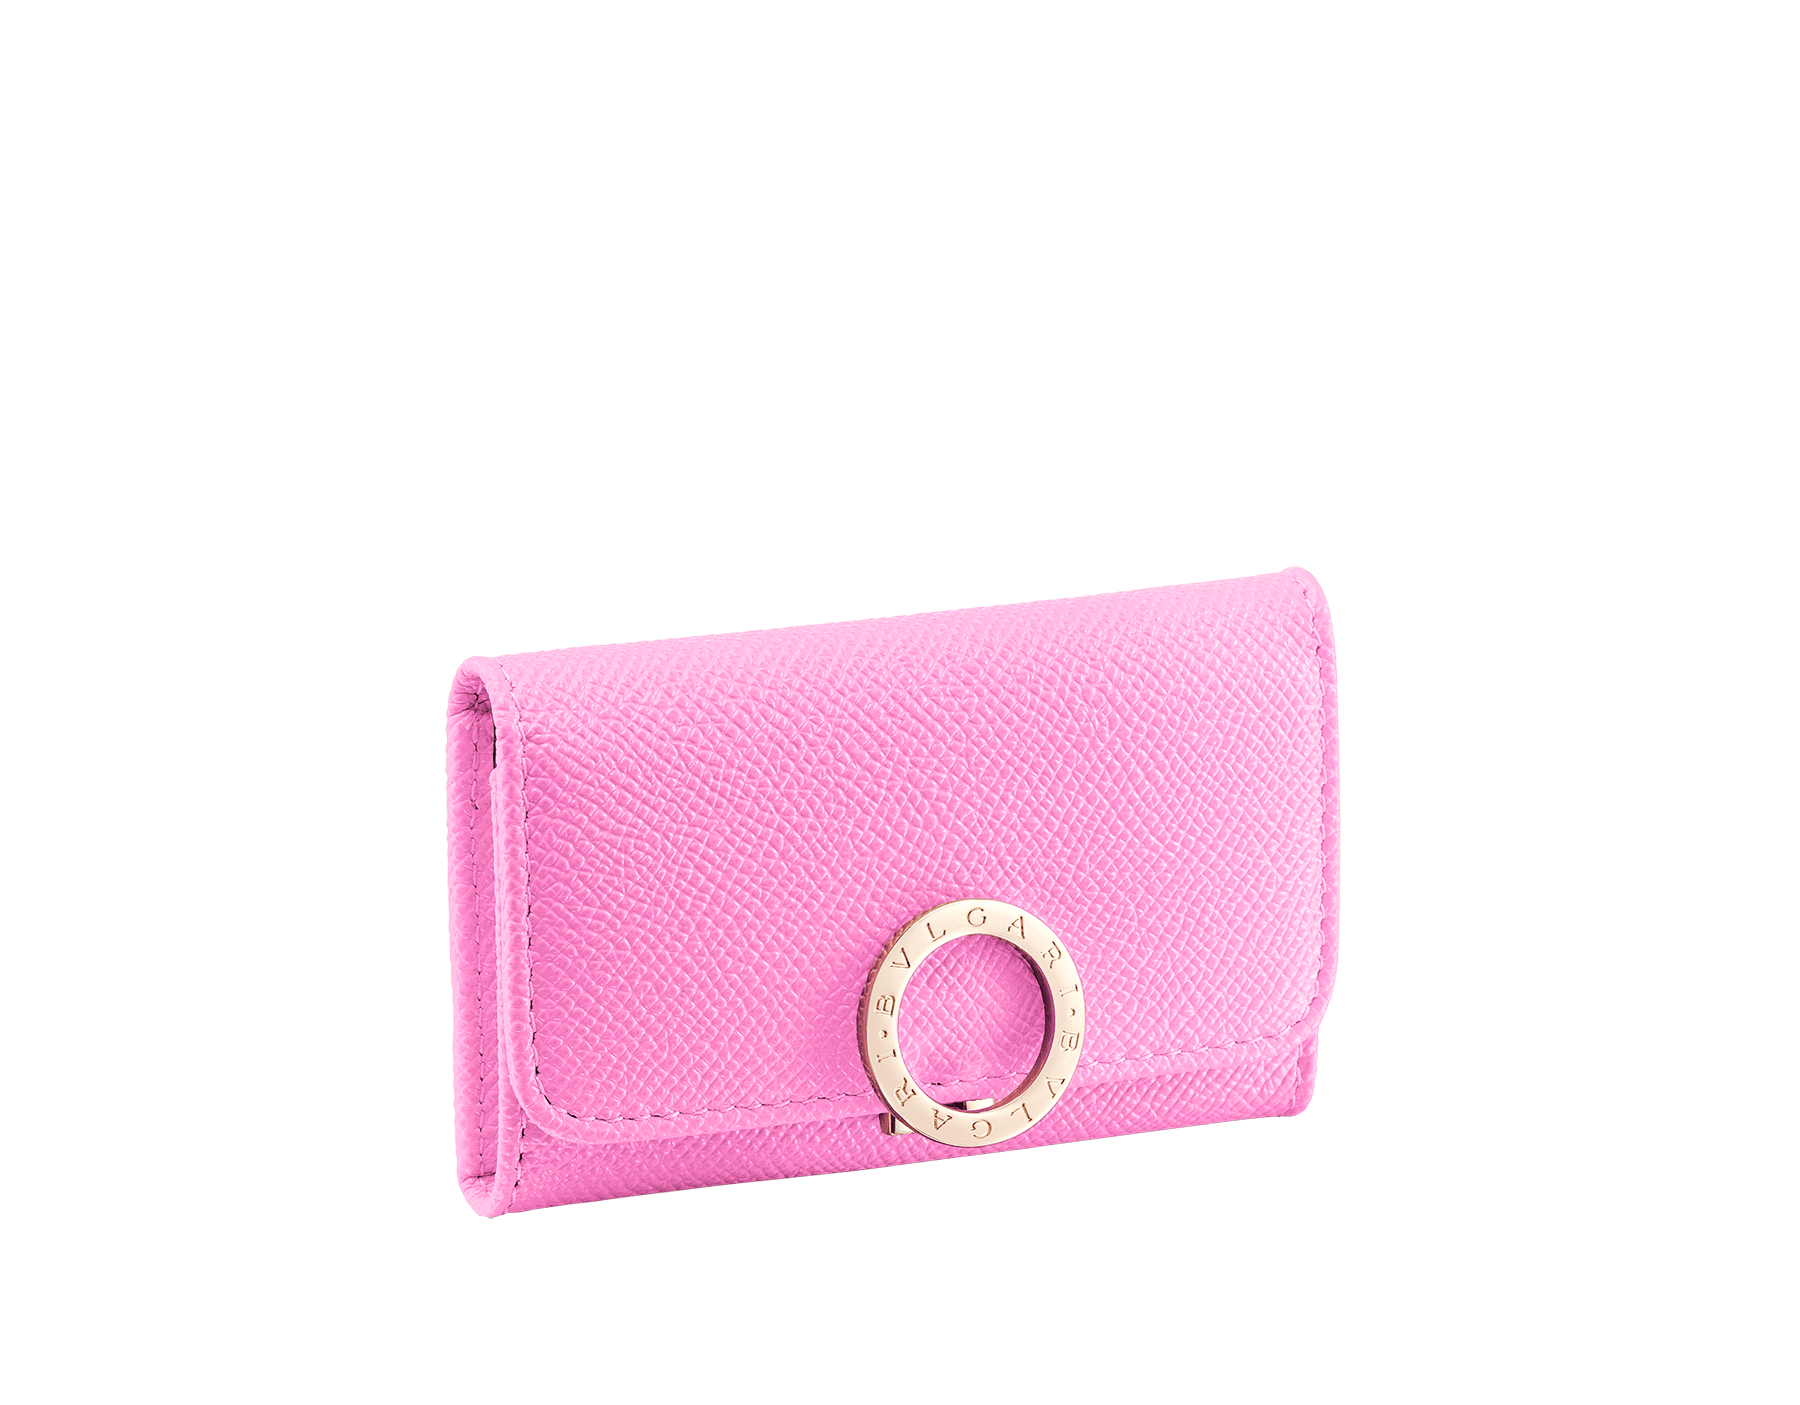 """""""BVLGARI BVLGARI"""" small key holder in mint bright grain calf leather and taffy quartz soft nappa leather. Iconic logo clip closure in light gold plated brass. 579-KEYHOLDER-S-BGCL image 1"""